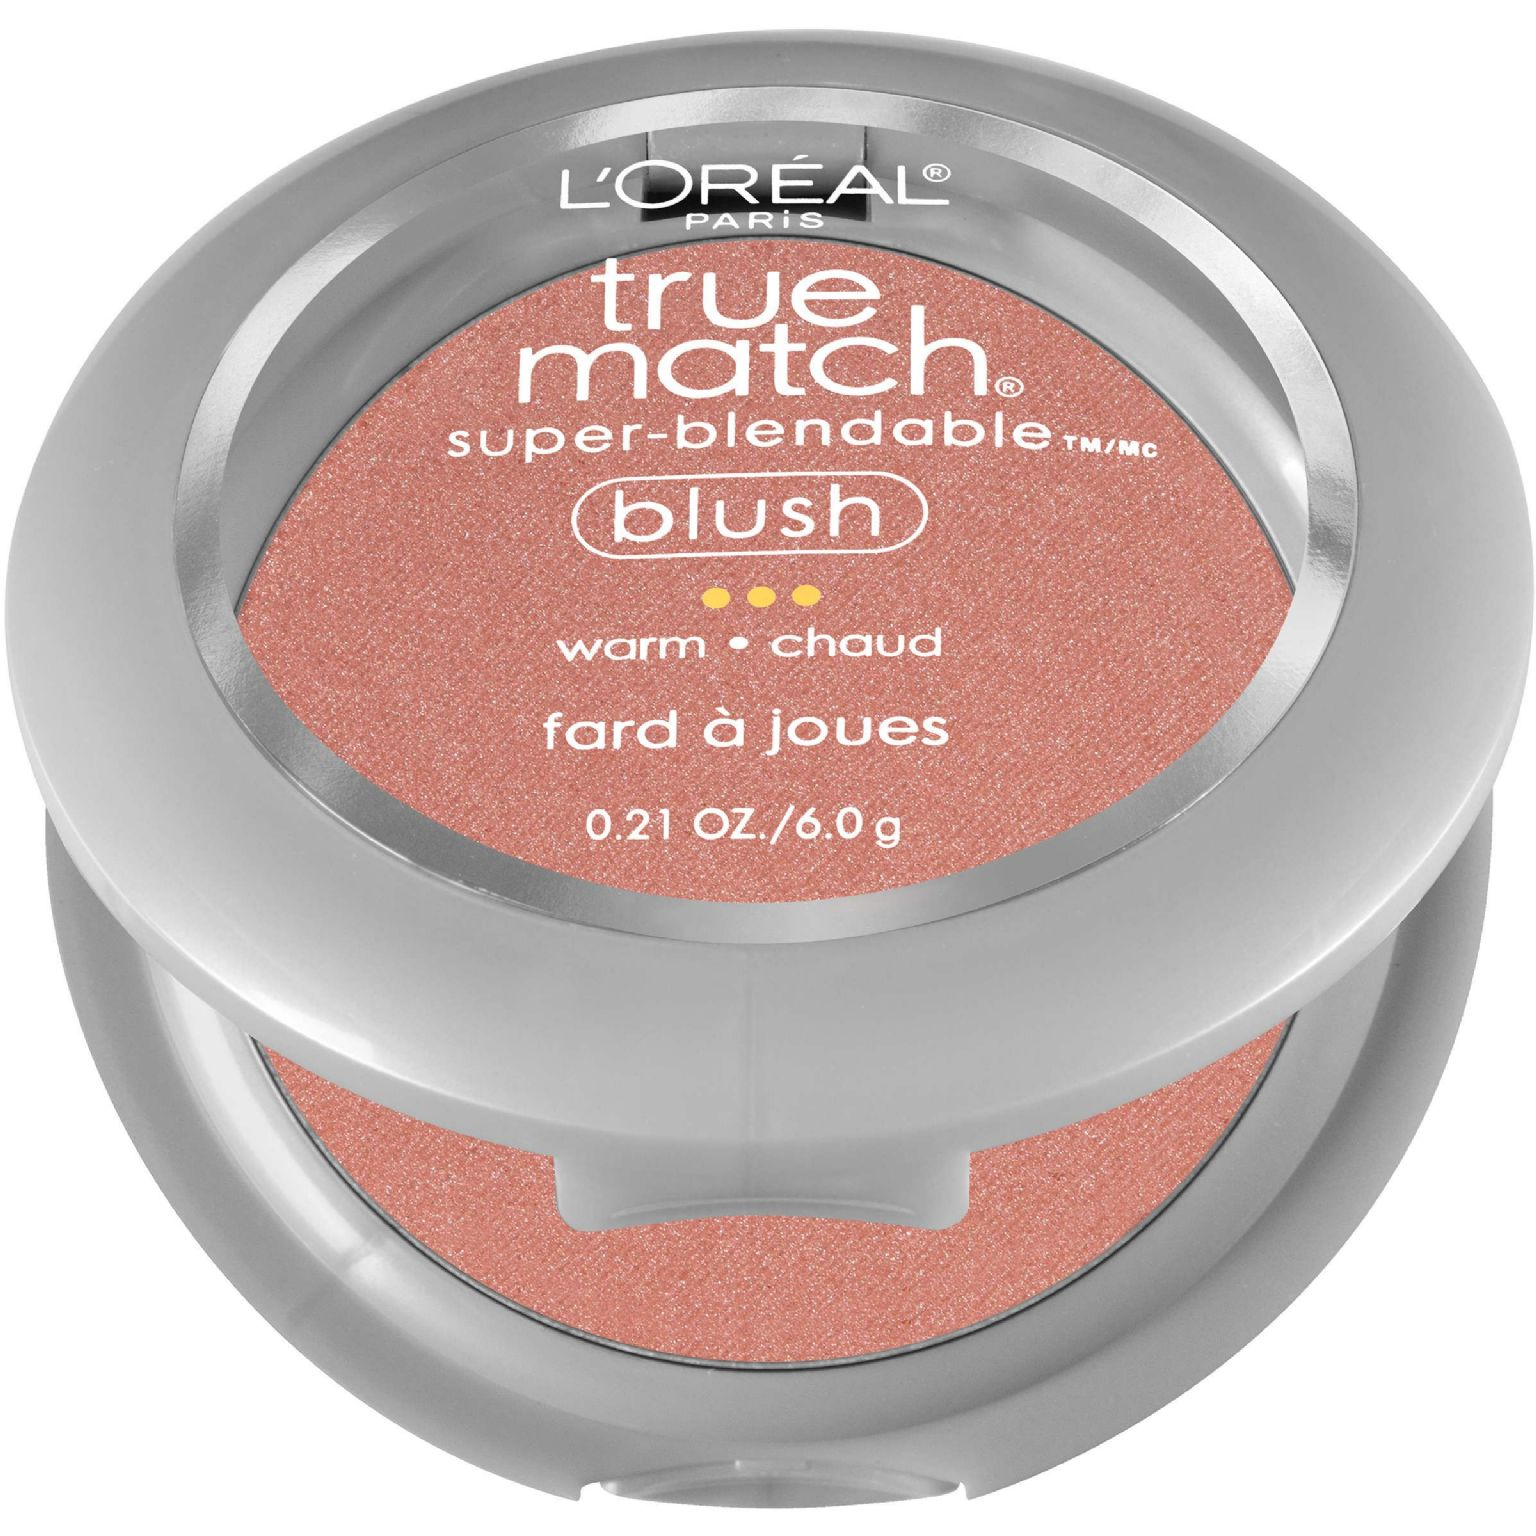 True Match Super-Blendable Blush - Innocent Flush